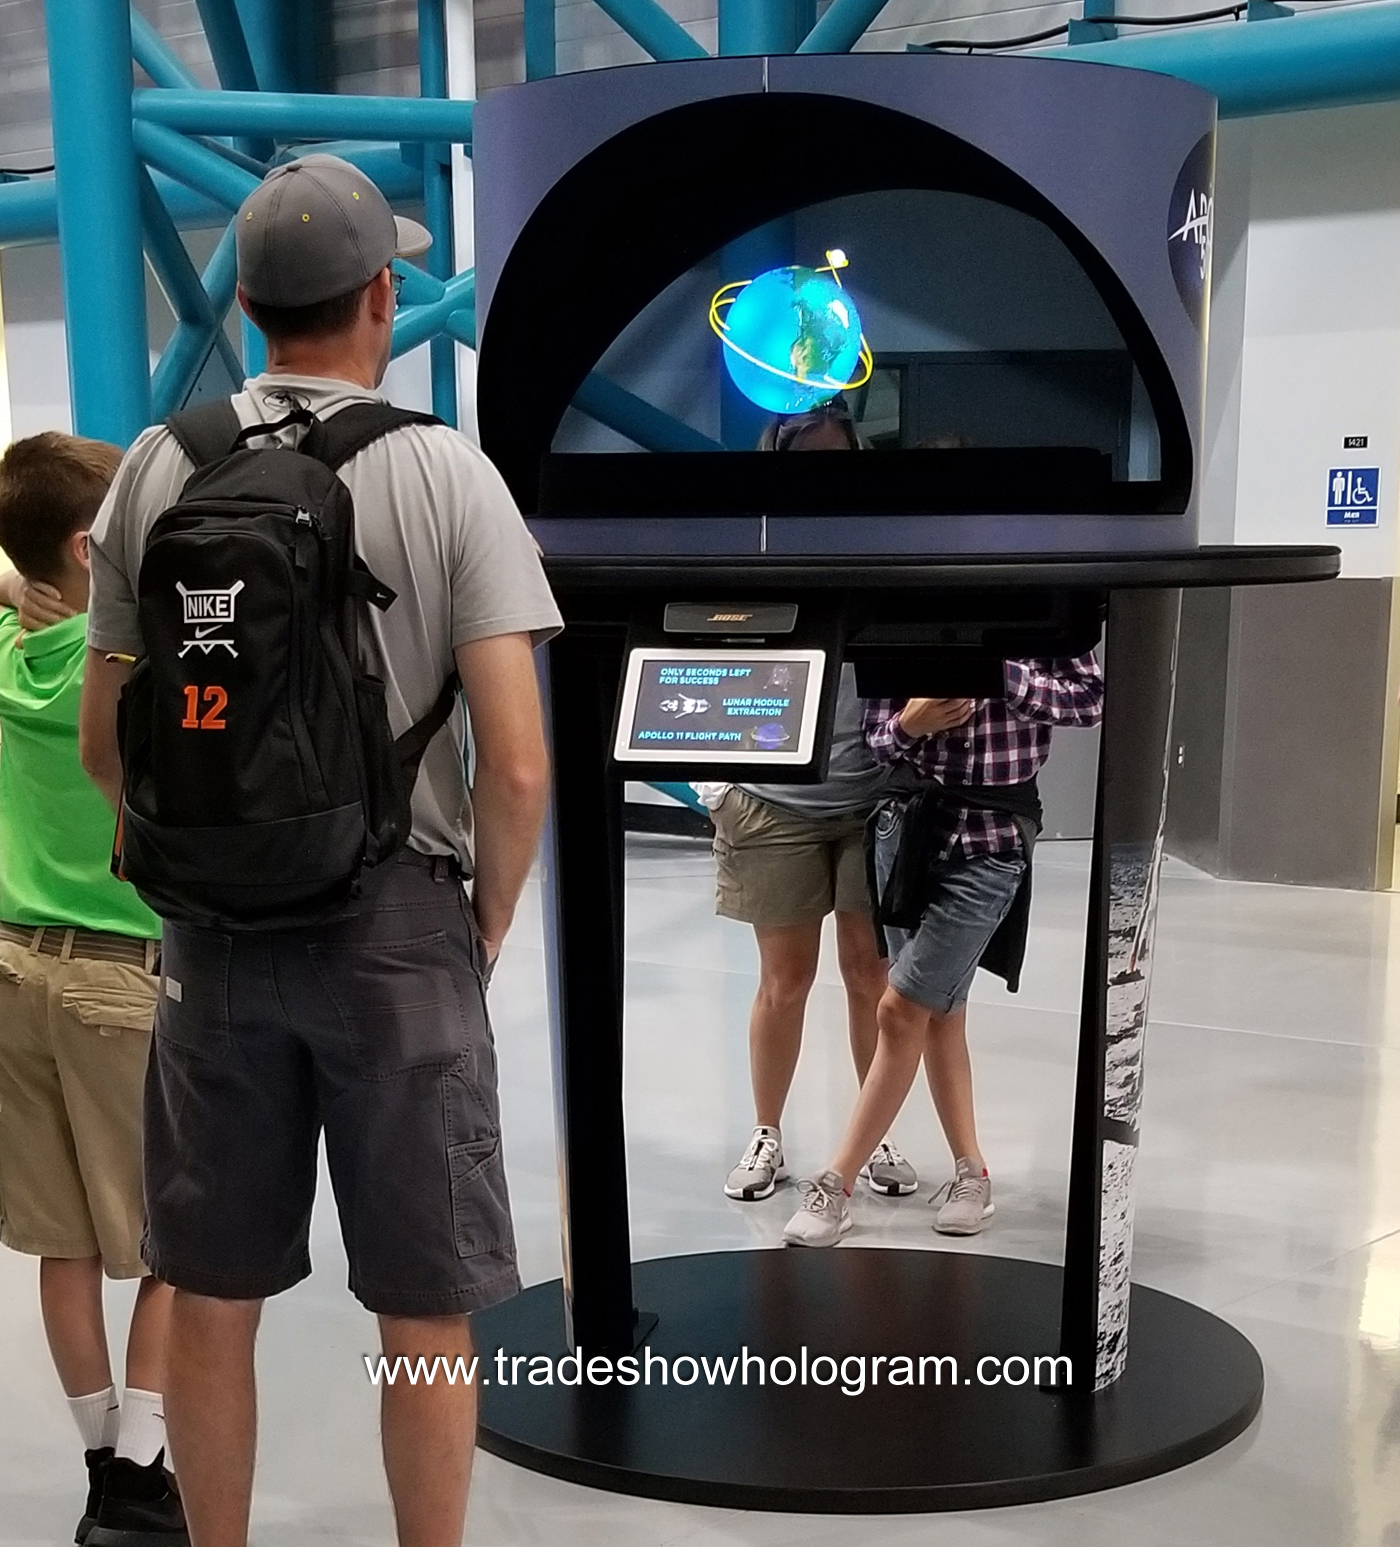 Holograms at the Kennedy Space Center